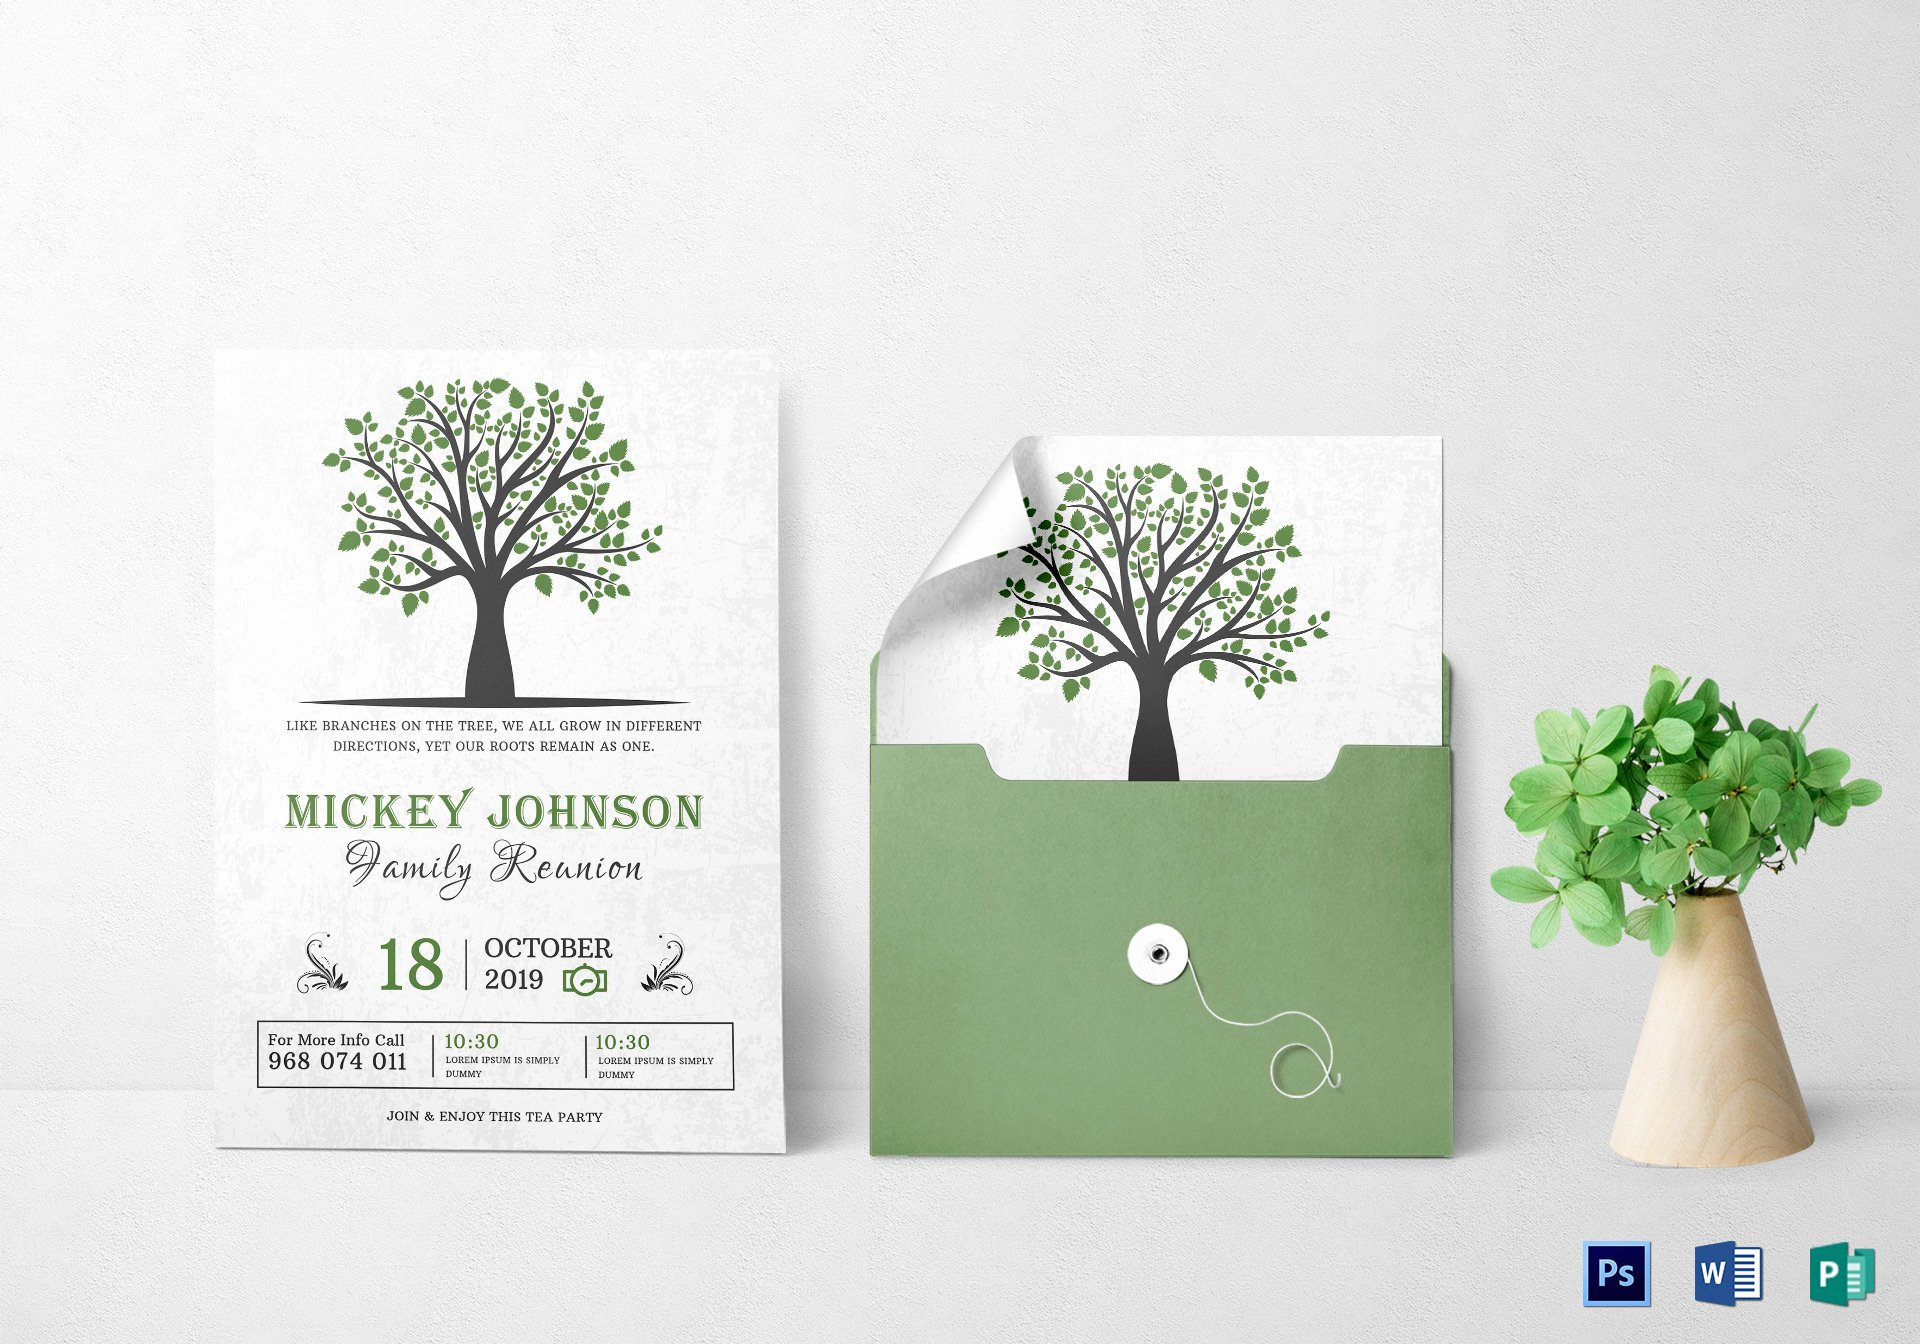 Family Reunion Invitations Templates Lovely Classic Family Reunion Invitation Design Template In Word